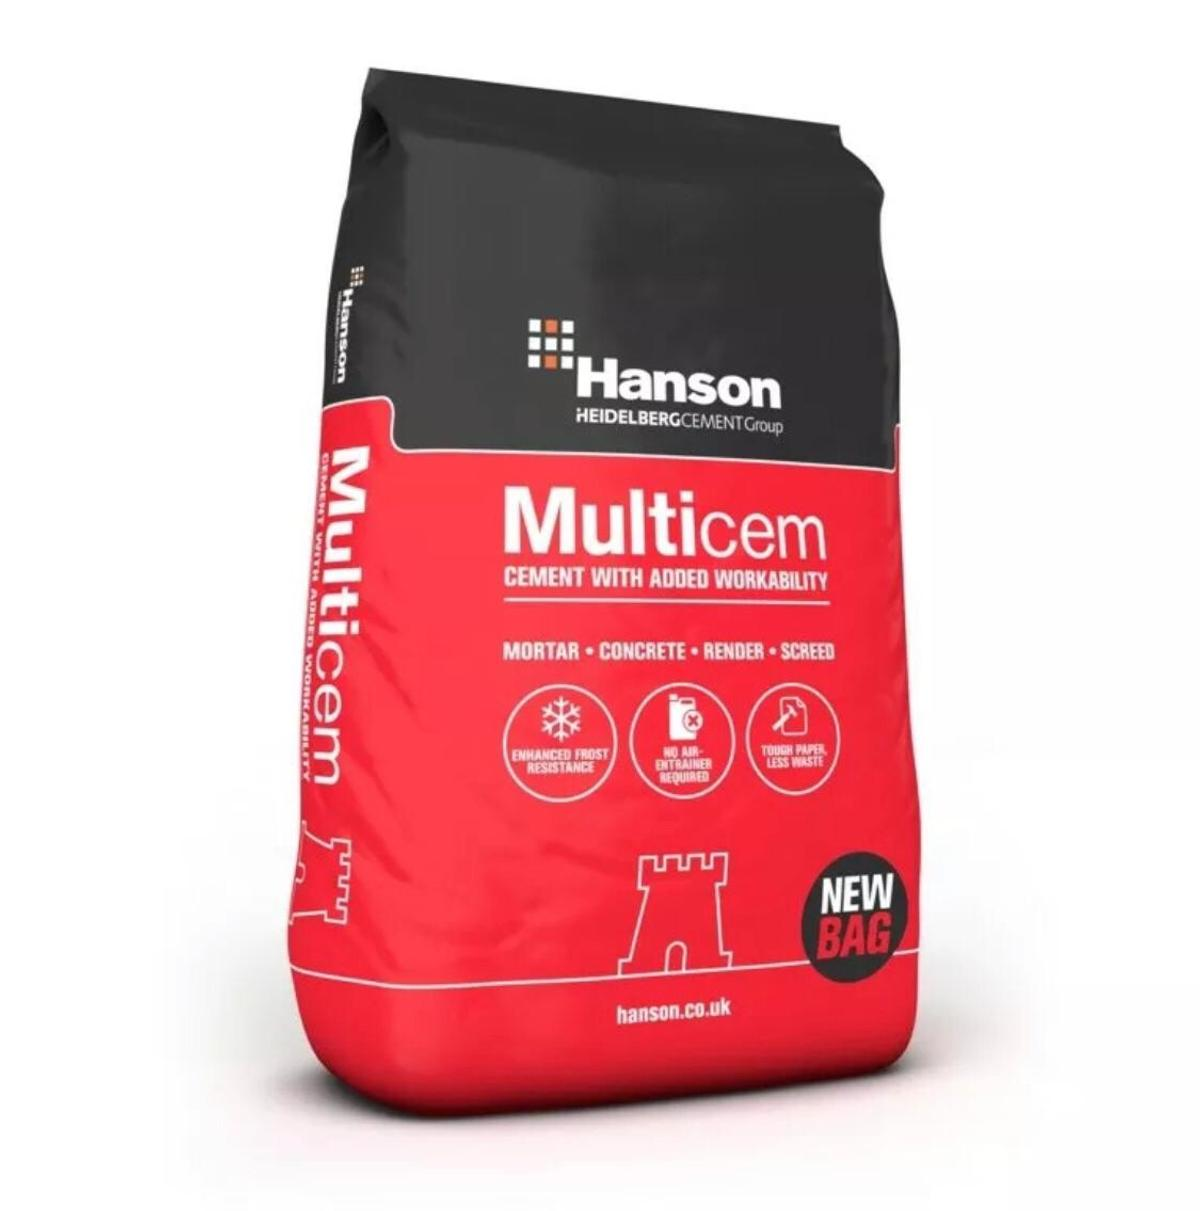 Cement 25KG Hanson MultiCem Fully Waterproof Bag